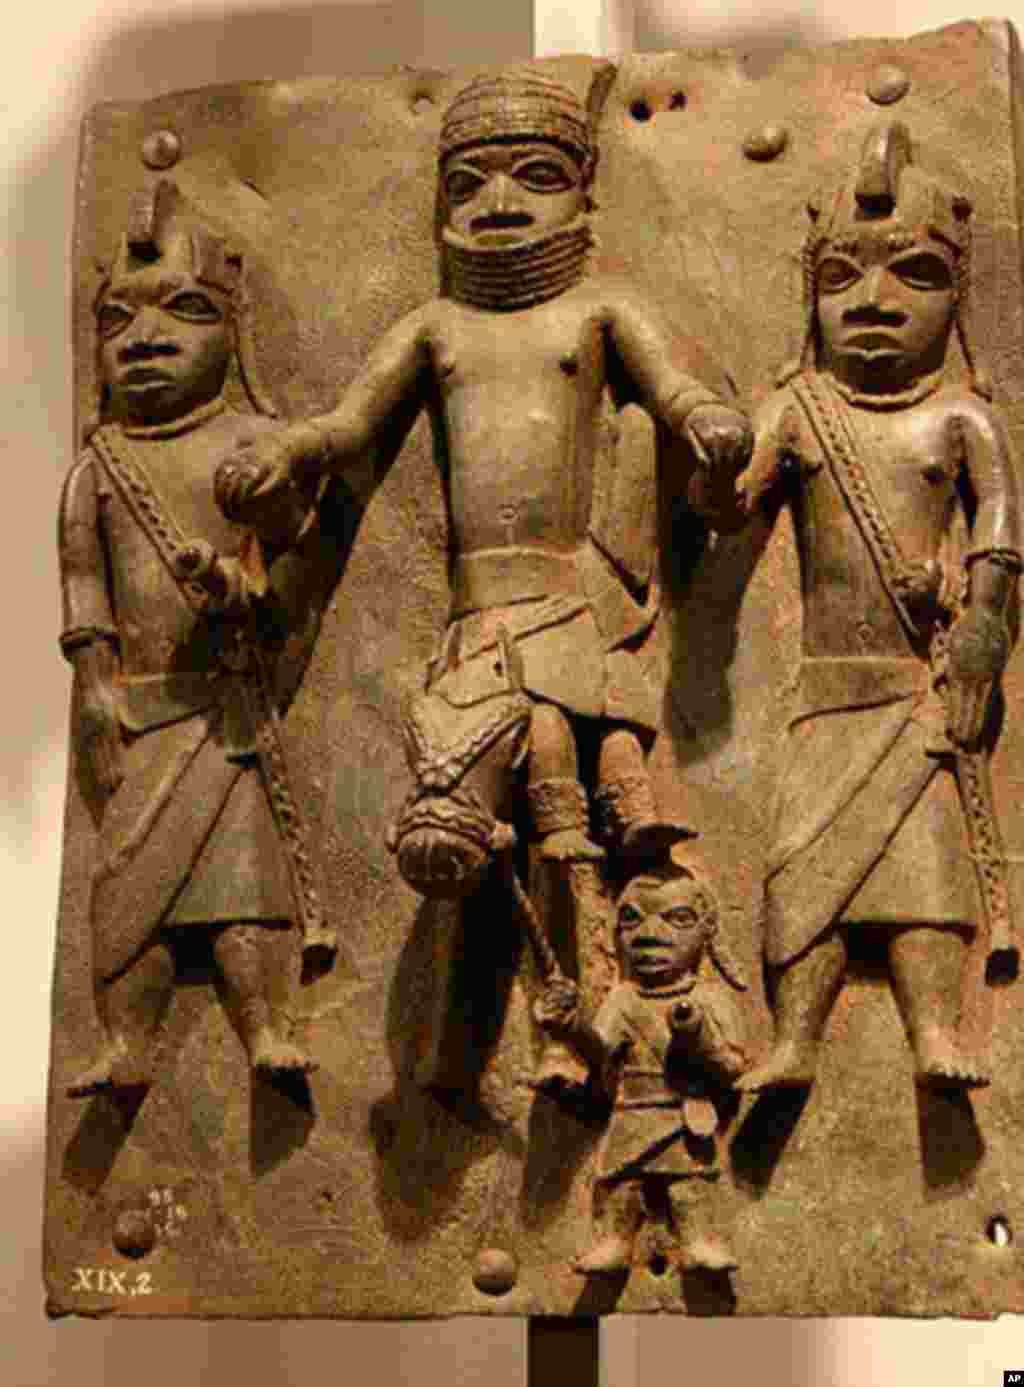 Benin Bronzes created by the Edo peoples of Benin, Nigeria, in the 16th Century. (Credit: Michel Wal)